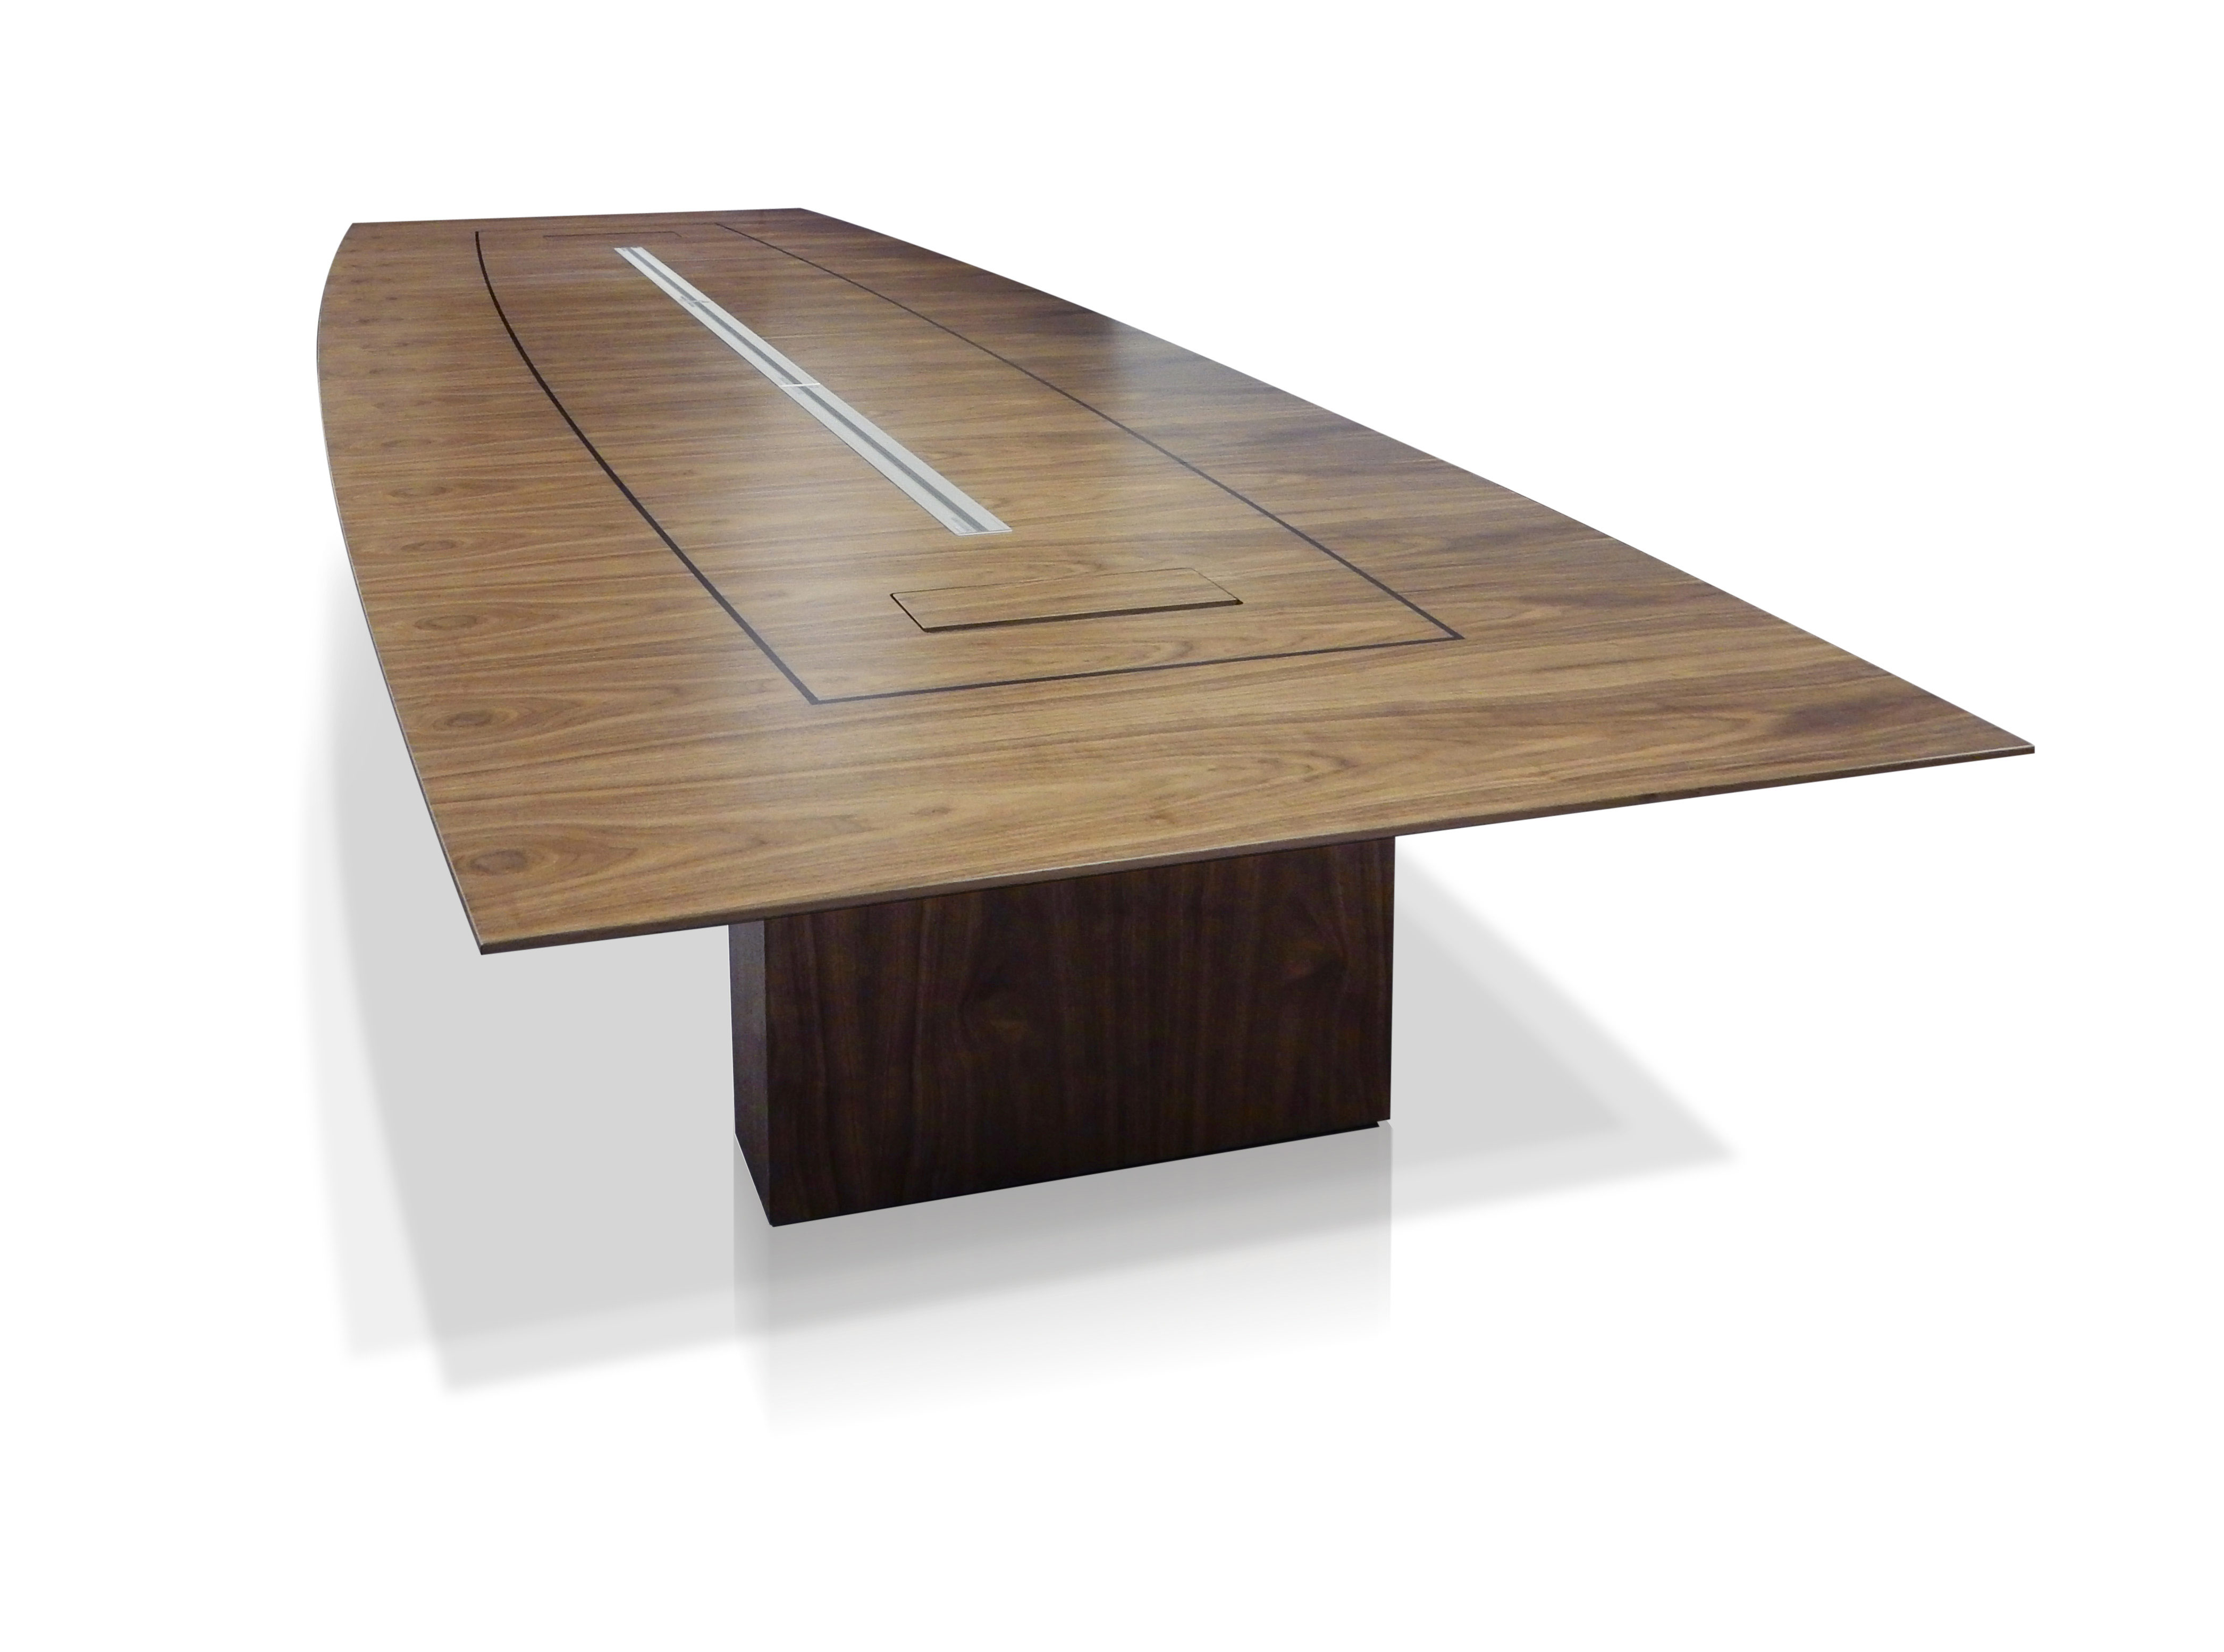 EBORCRAFT'S NEW BOARDROOM TABLE COMBINES APPEARANCE WITH FUNCTIONALITY